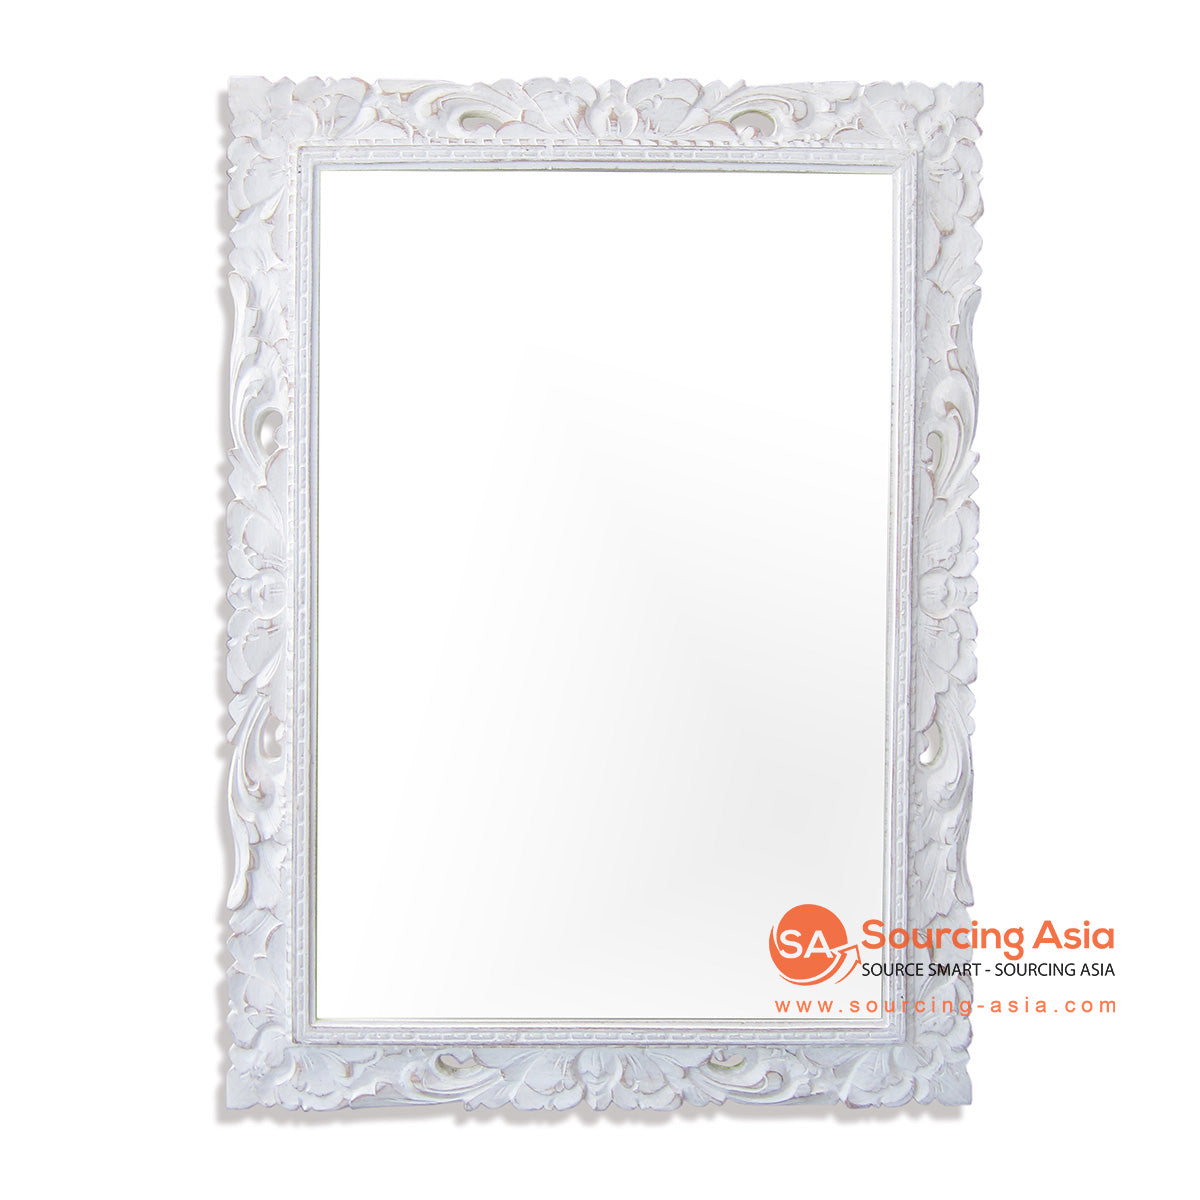 SSU022WW-60X80 WOODEN MIRROR WITH CARVING